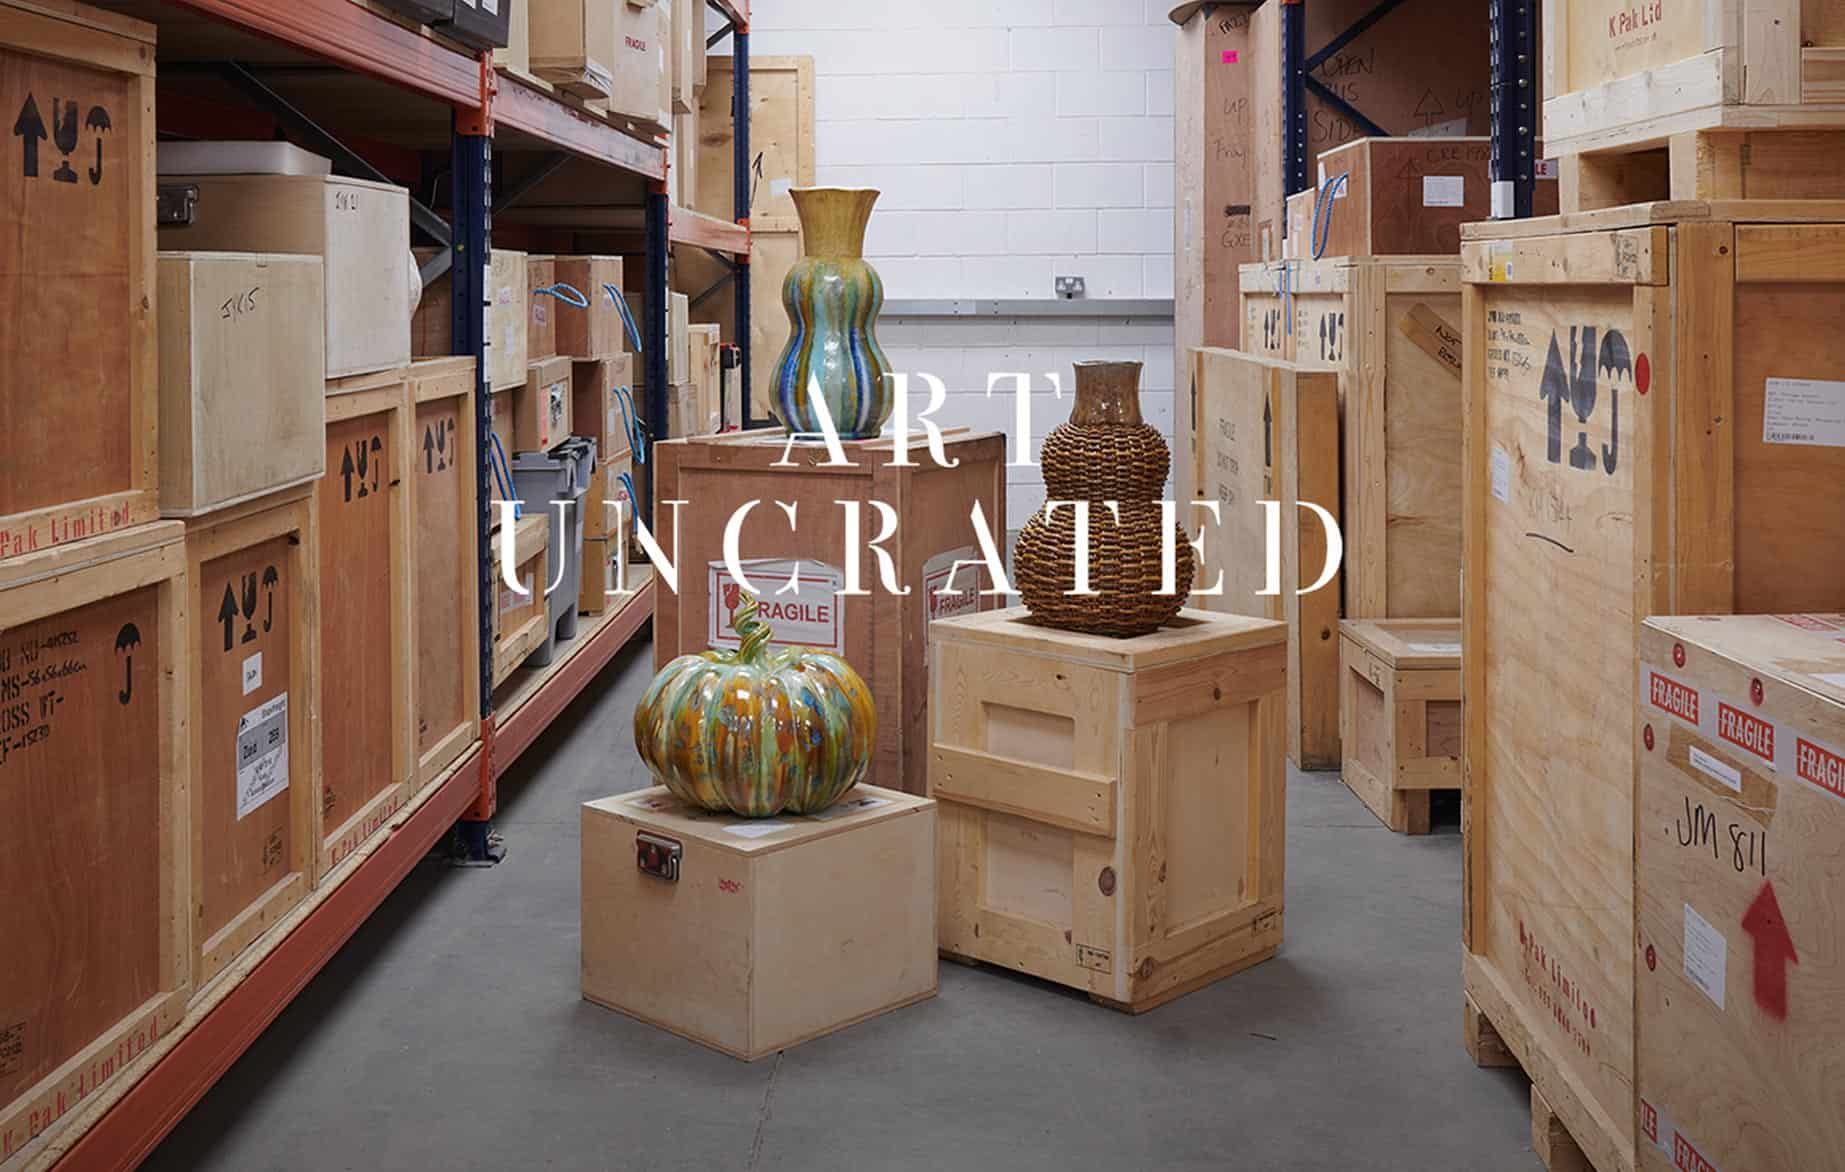 Art Uncrated text over image of three kate malone sculptures in a warehouse